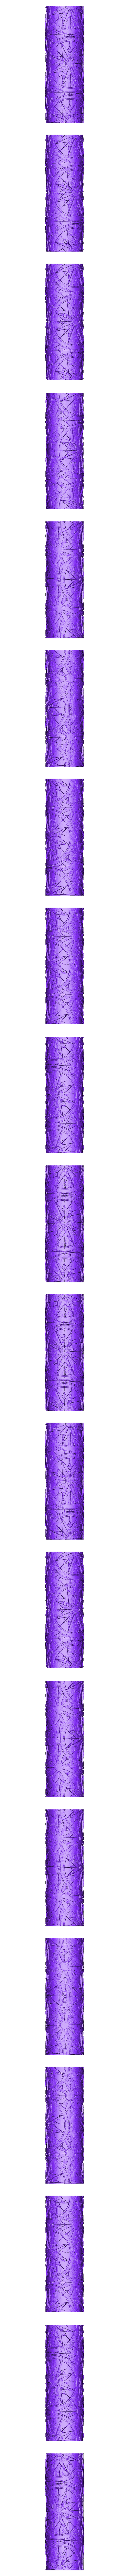 TextureRoll_Ornate_Compass.stl Download free STL file Ornate Texture Roll Set • Model to 3D print, The5_1